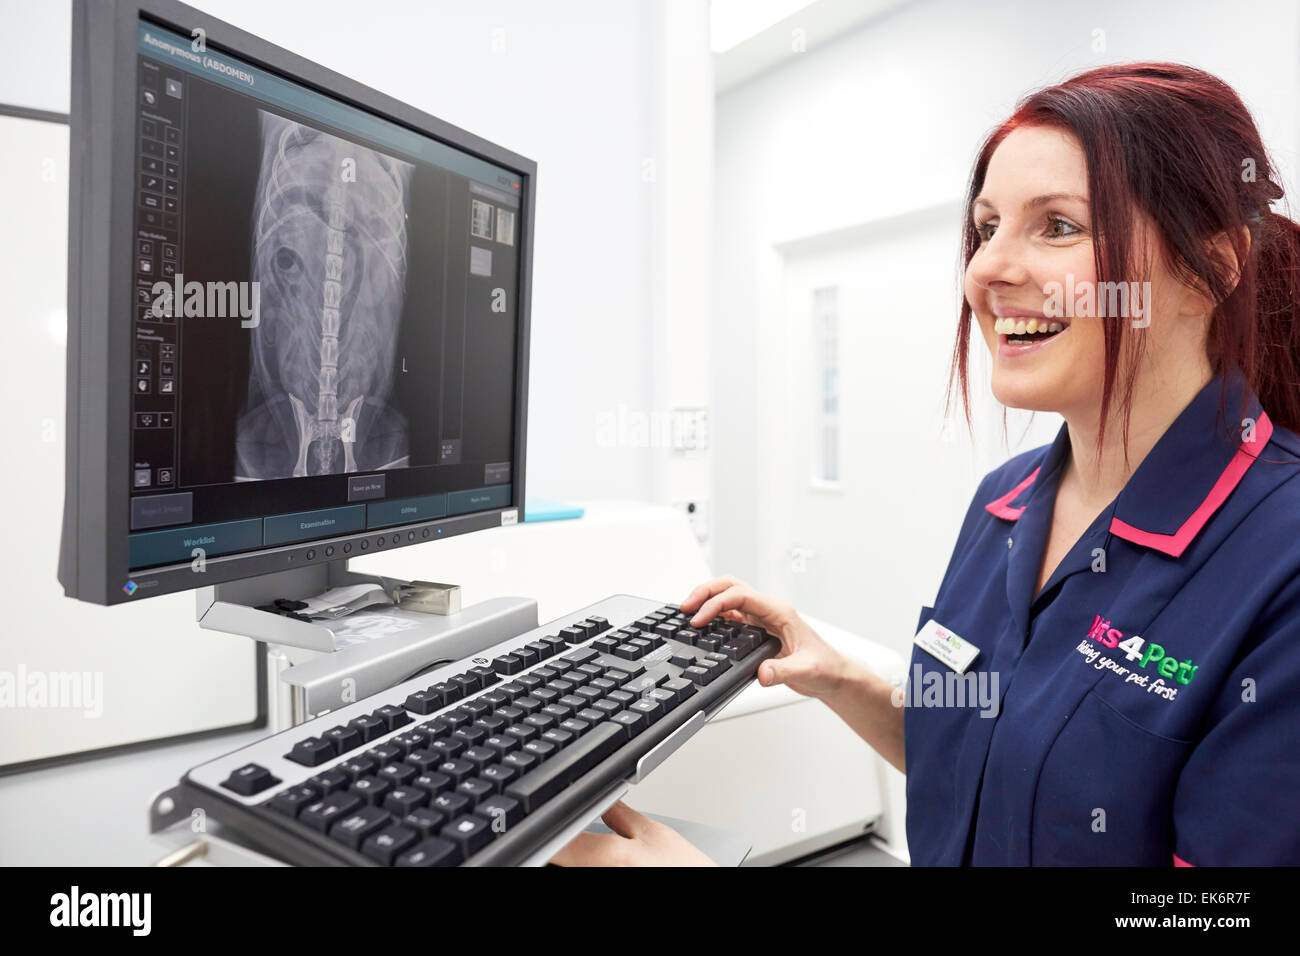 Pets at Home widnes add a groom room and Vets 4 Pets to their store. Pictured Nurse  at the x-ray machine - Stock Image